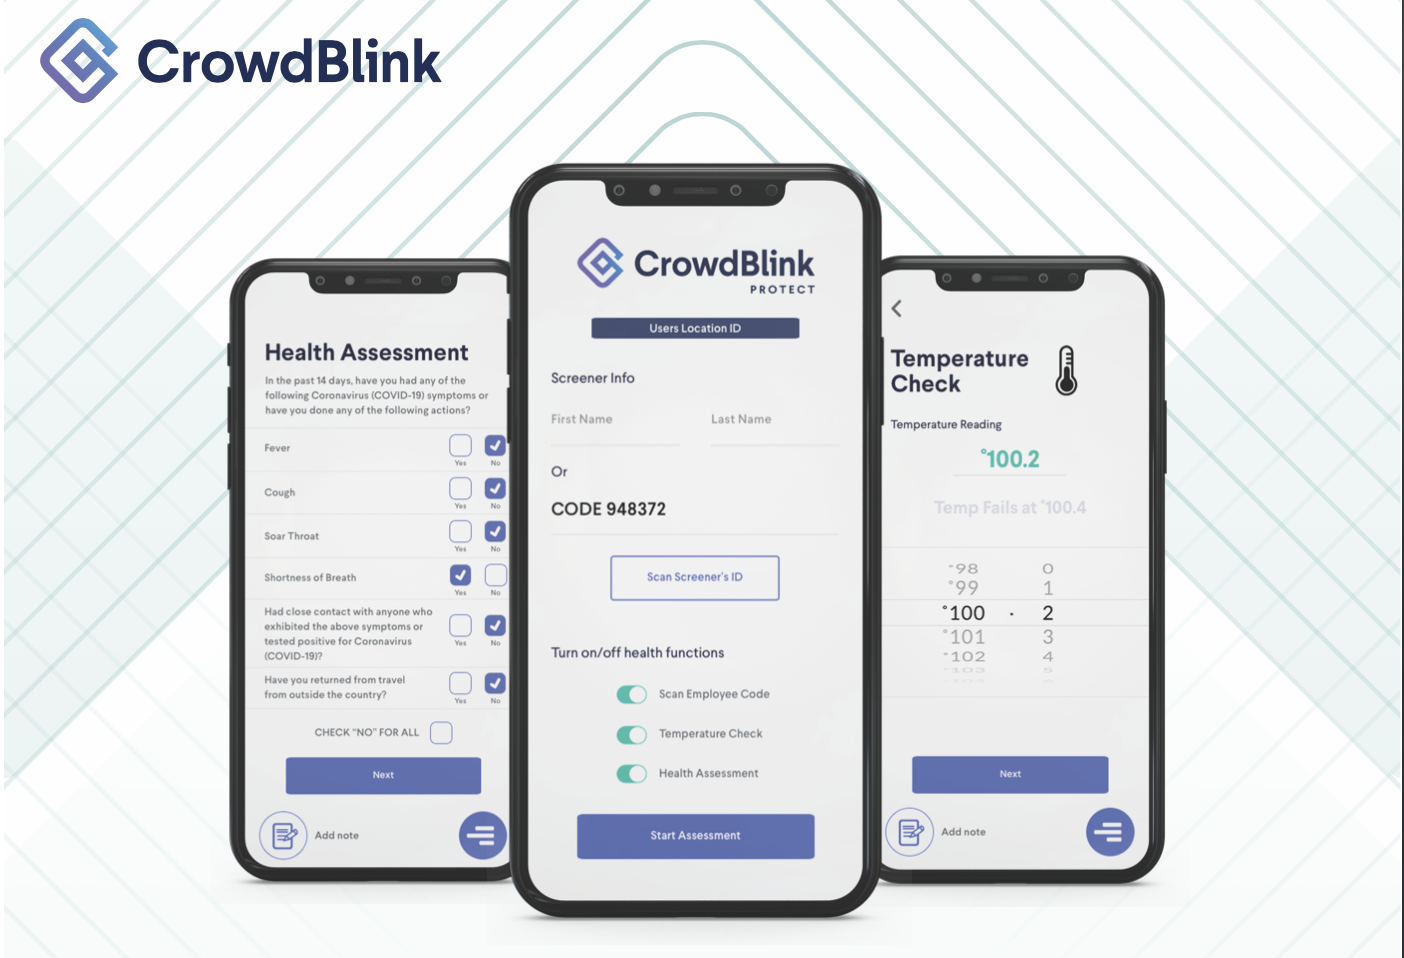 CrowdBlink Protect mobile application being used to screen for symptoms of COVID-19 by a business.